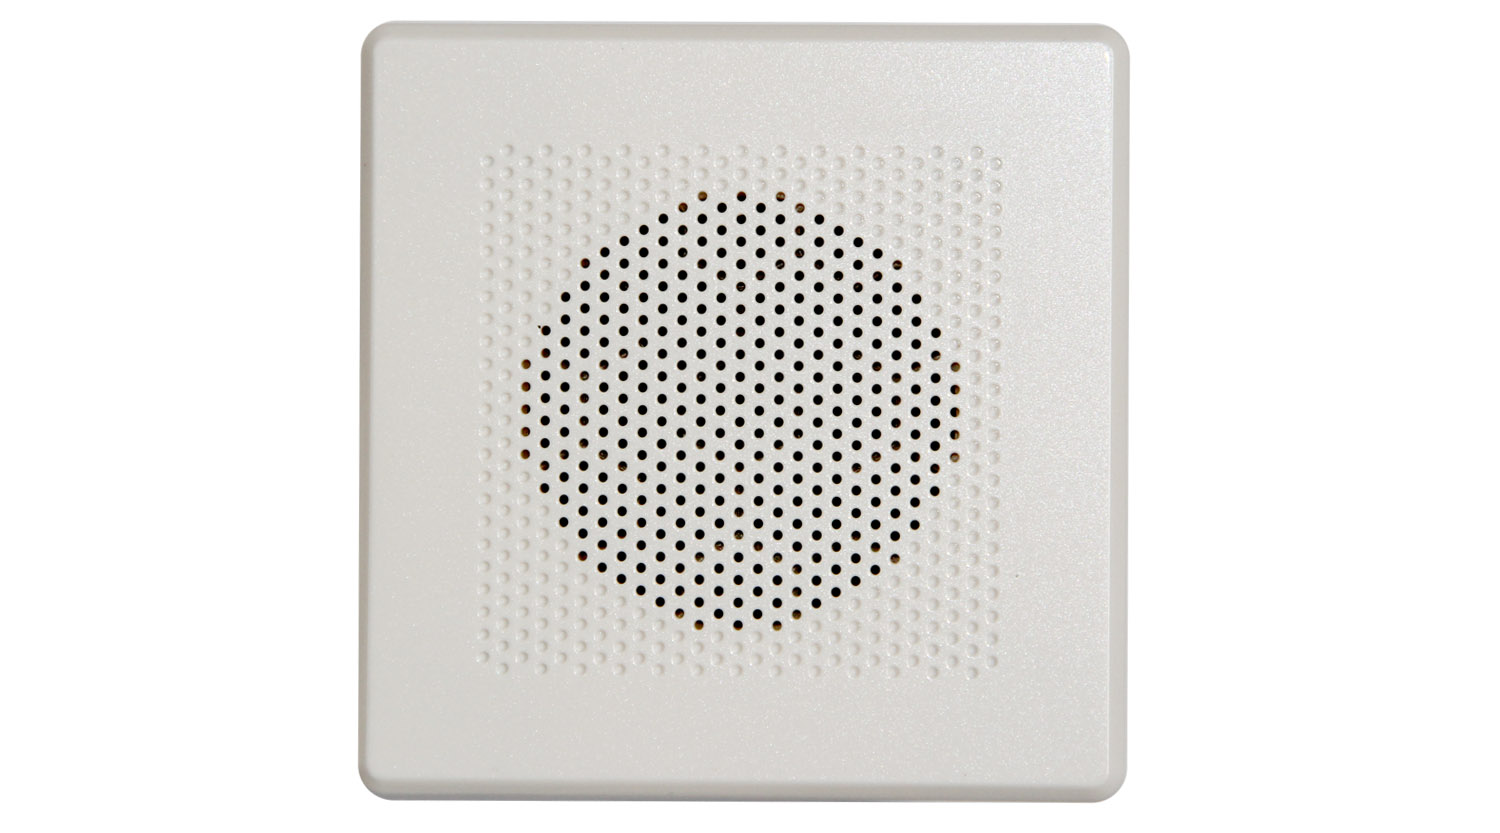 Kitchen Speaker Home Audio Loudspeaker In Ceiling Speaker 4ohm Stereo